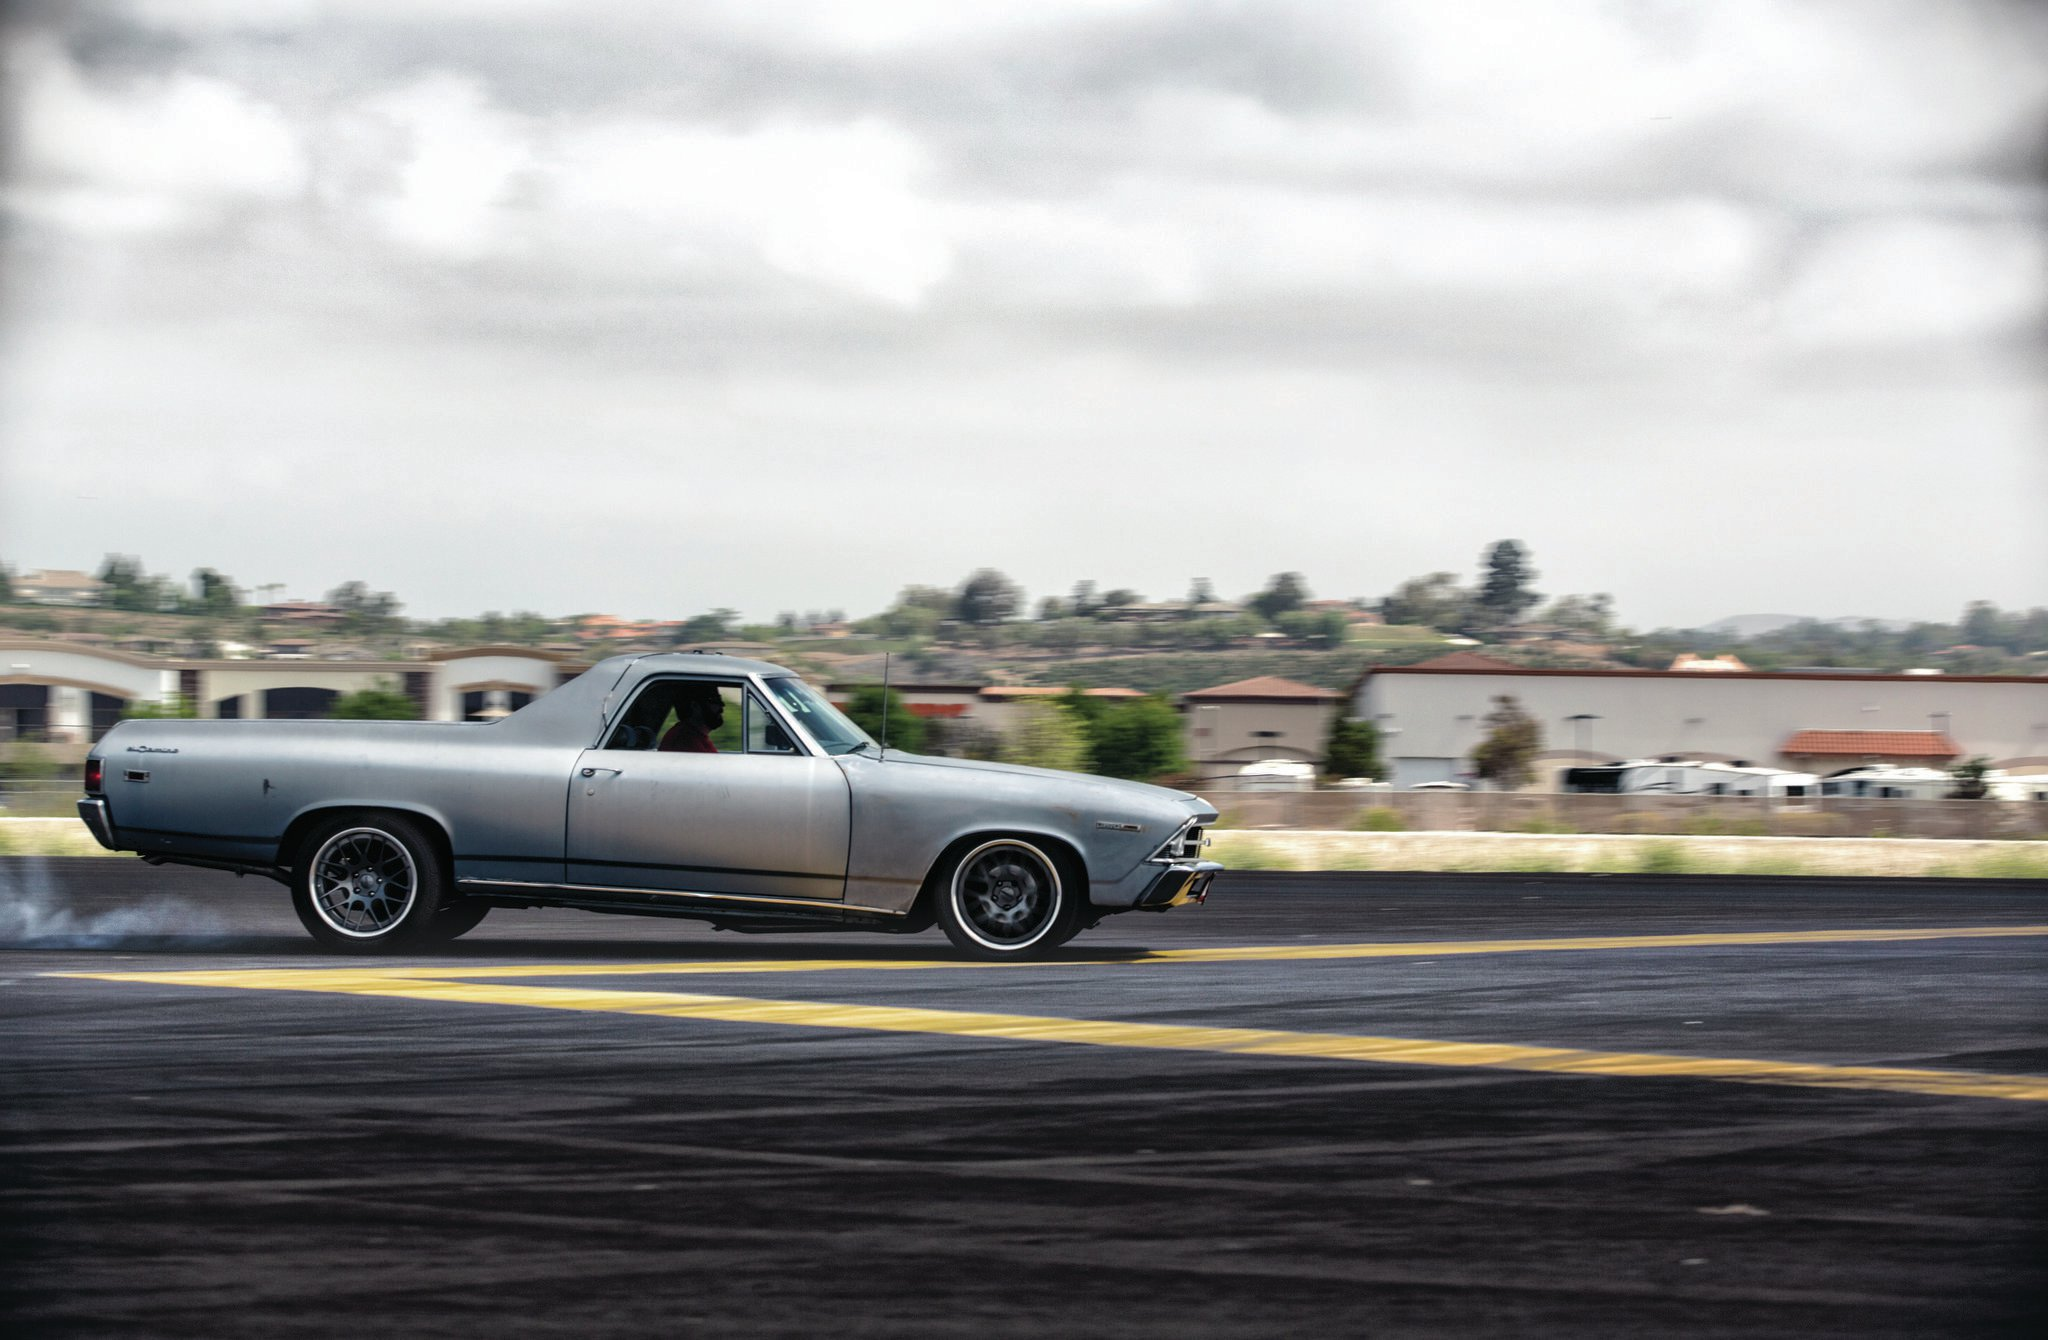 Our 1969 Chevy El Camino cornered well but stopped poorly, a trait we remedied in just one day of testing new brake parts and a new rearend.